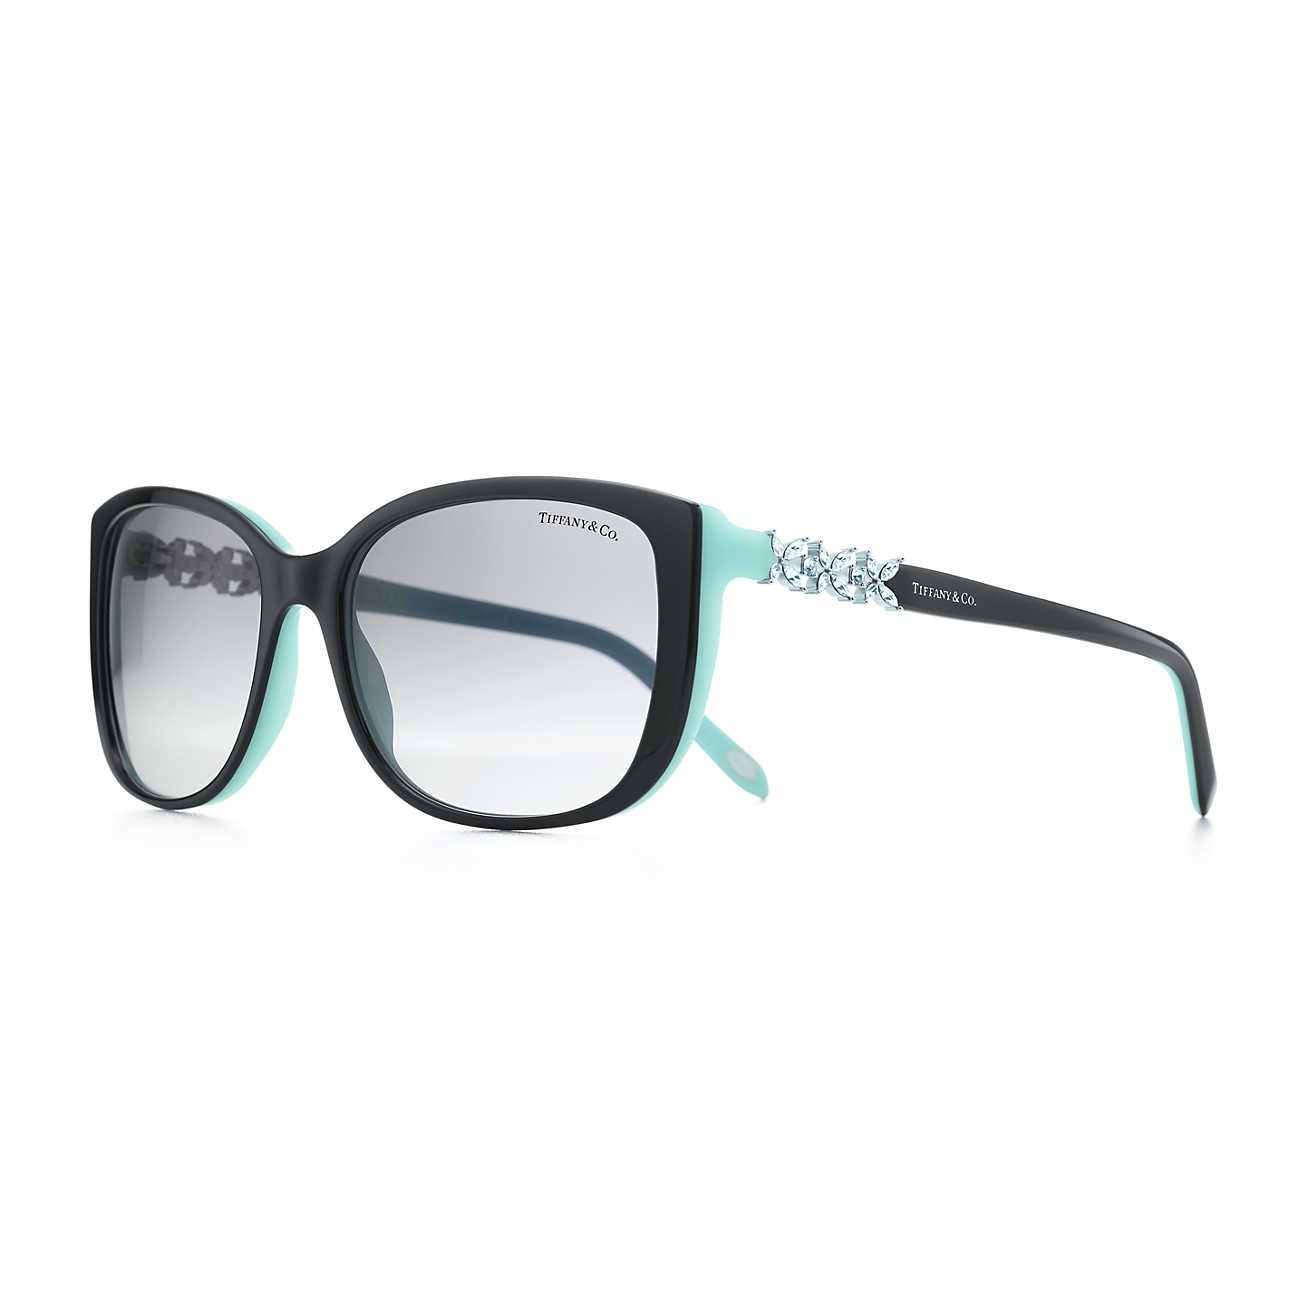 4fdaa66056 Tiffany Victoria™:Square Sunglasses | Fashion | Gafas de sol, Gafas ...